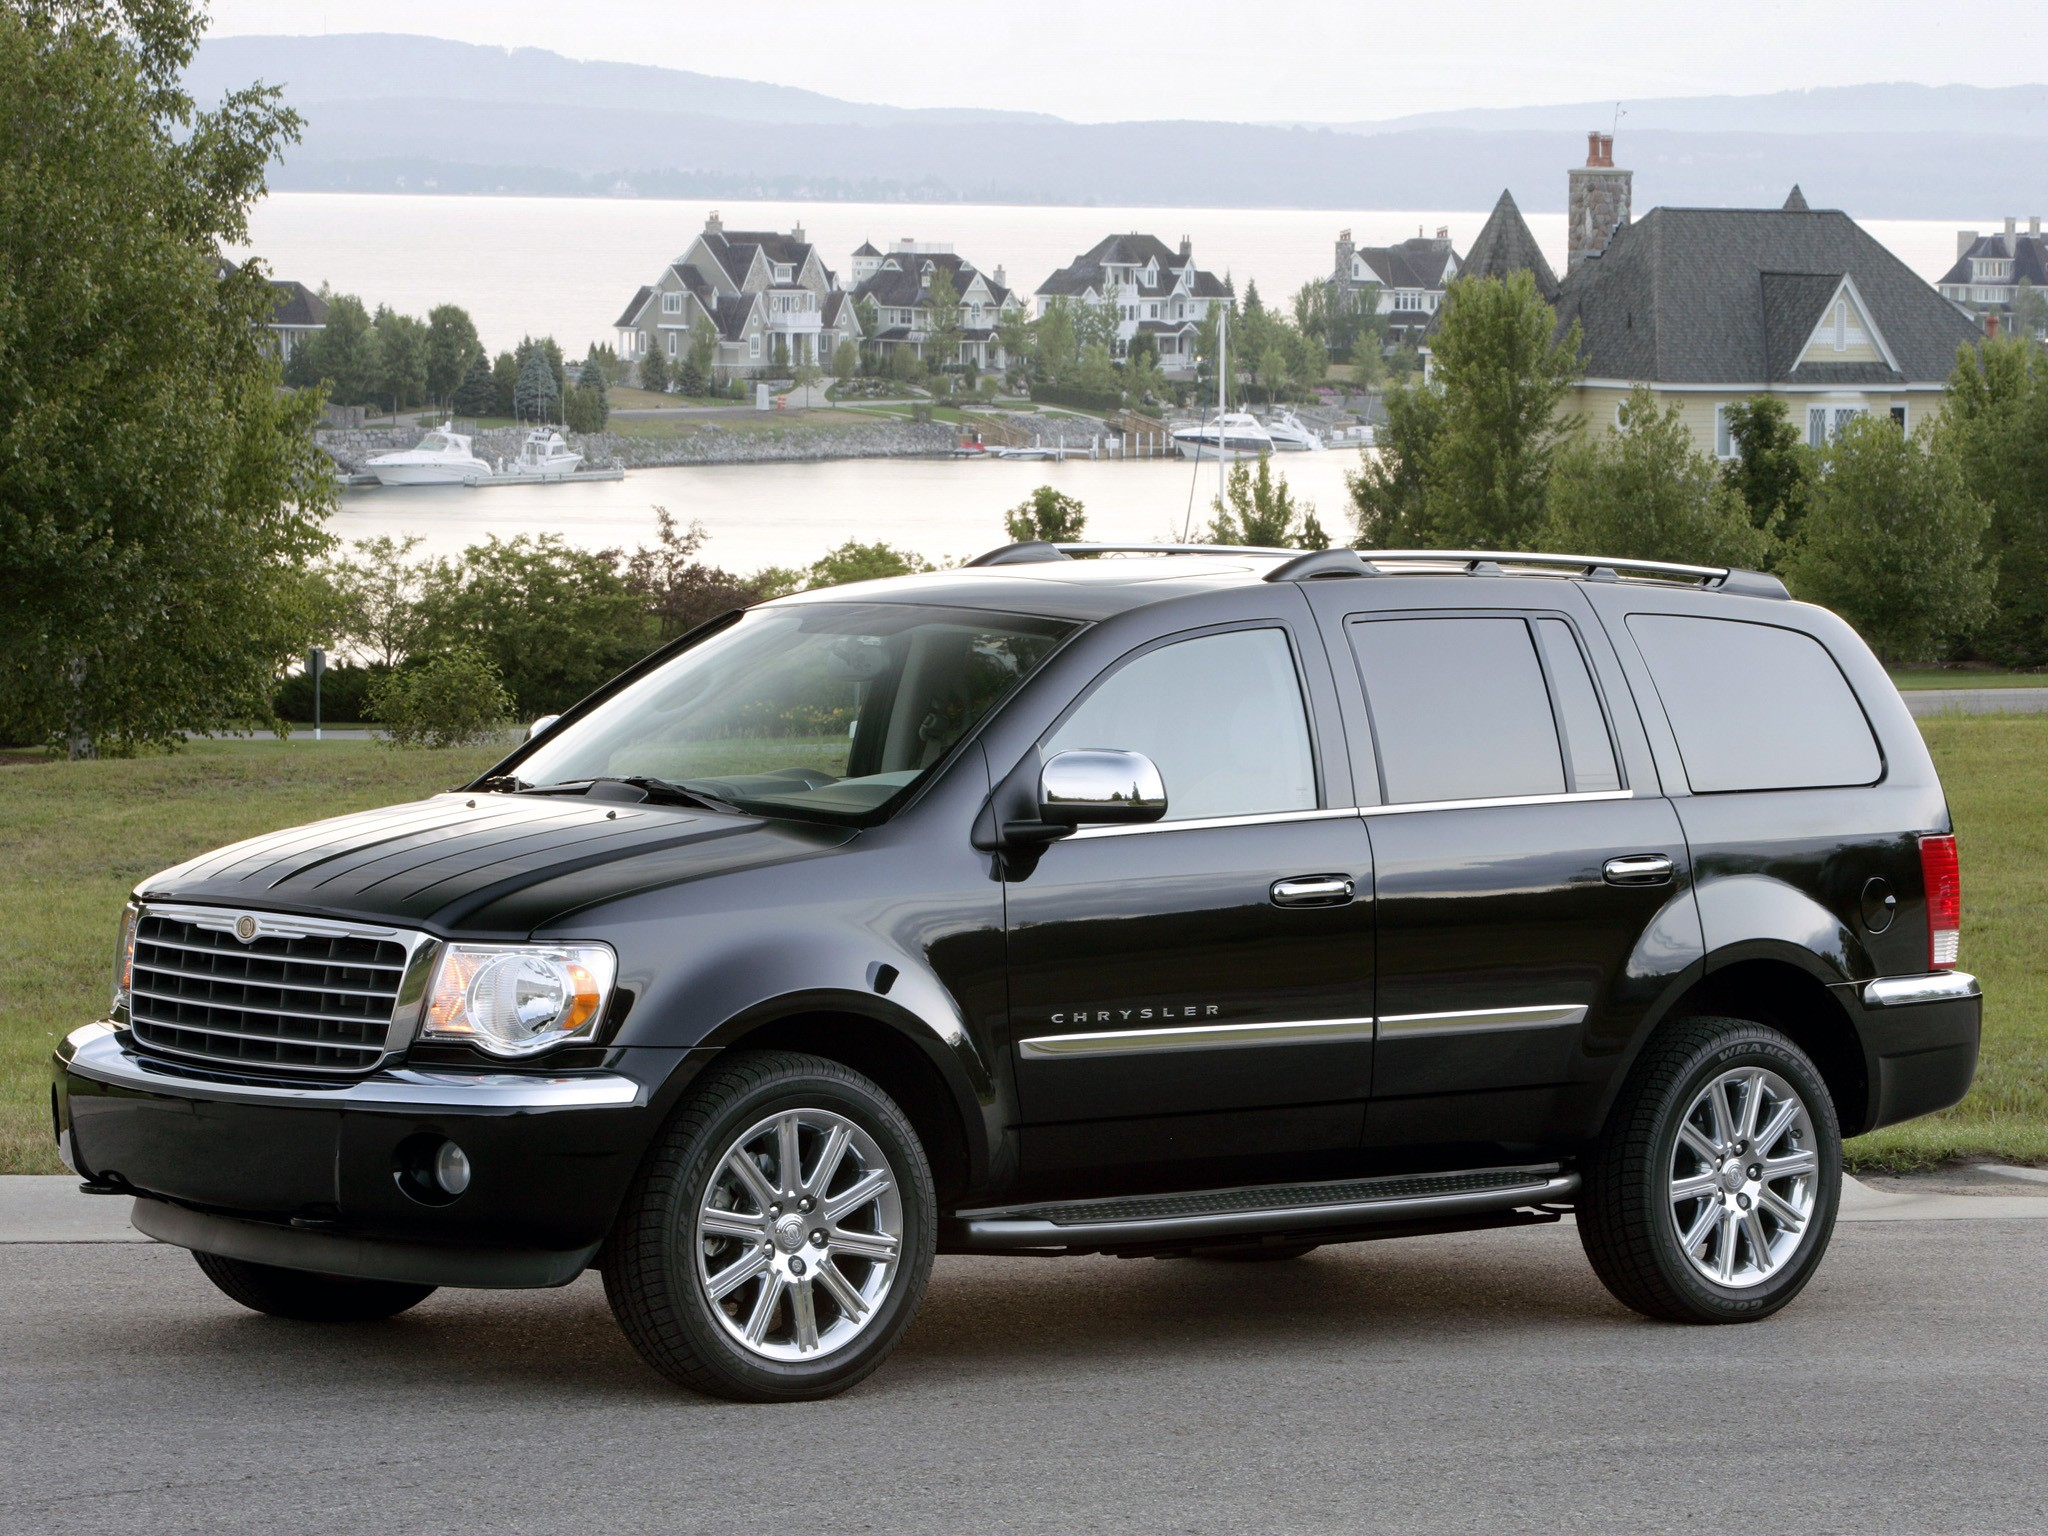 2008 chrysler aspen review ratings specs prices and autos post. Black Bedroom Furniture Sets. Home Design Ideas